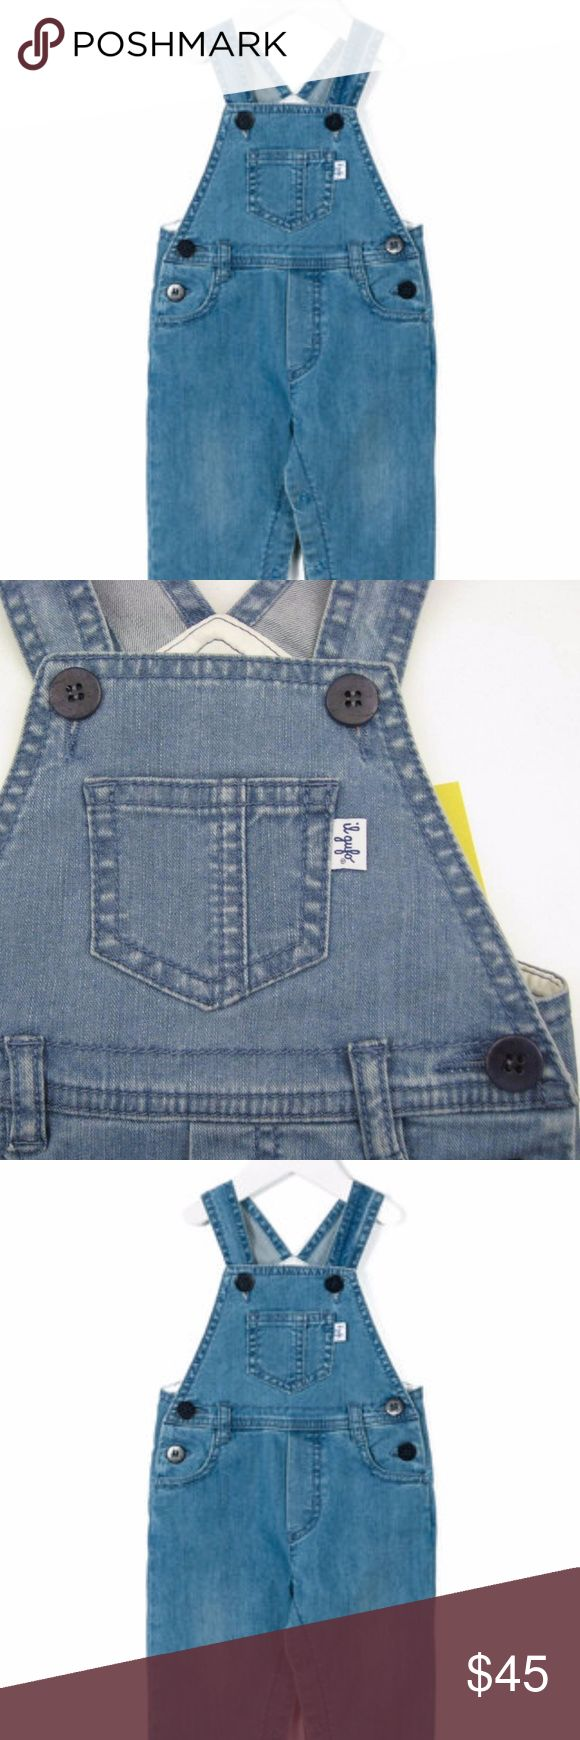 Il Gufo Denim Overall (NEW) Blue denim dungarees by Il Gufo, made in soft cotton with a washed and faded look.  Useful and practical, they fasten with logo buttons on the straps and at the sides and have front and back pockets with a decorative fly.  With a lined bib, there is a chest pocket, with the designer's fabric logo tab sewn on the seam.  98% cotton, 2% elastane (soft, woven feel) Bib lining: 100% cotton (fine, soft feel) Machine wash (40*C) Button fasteners 6-12 month Made in Italy…